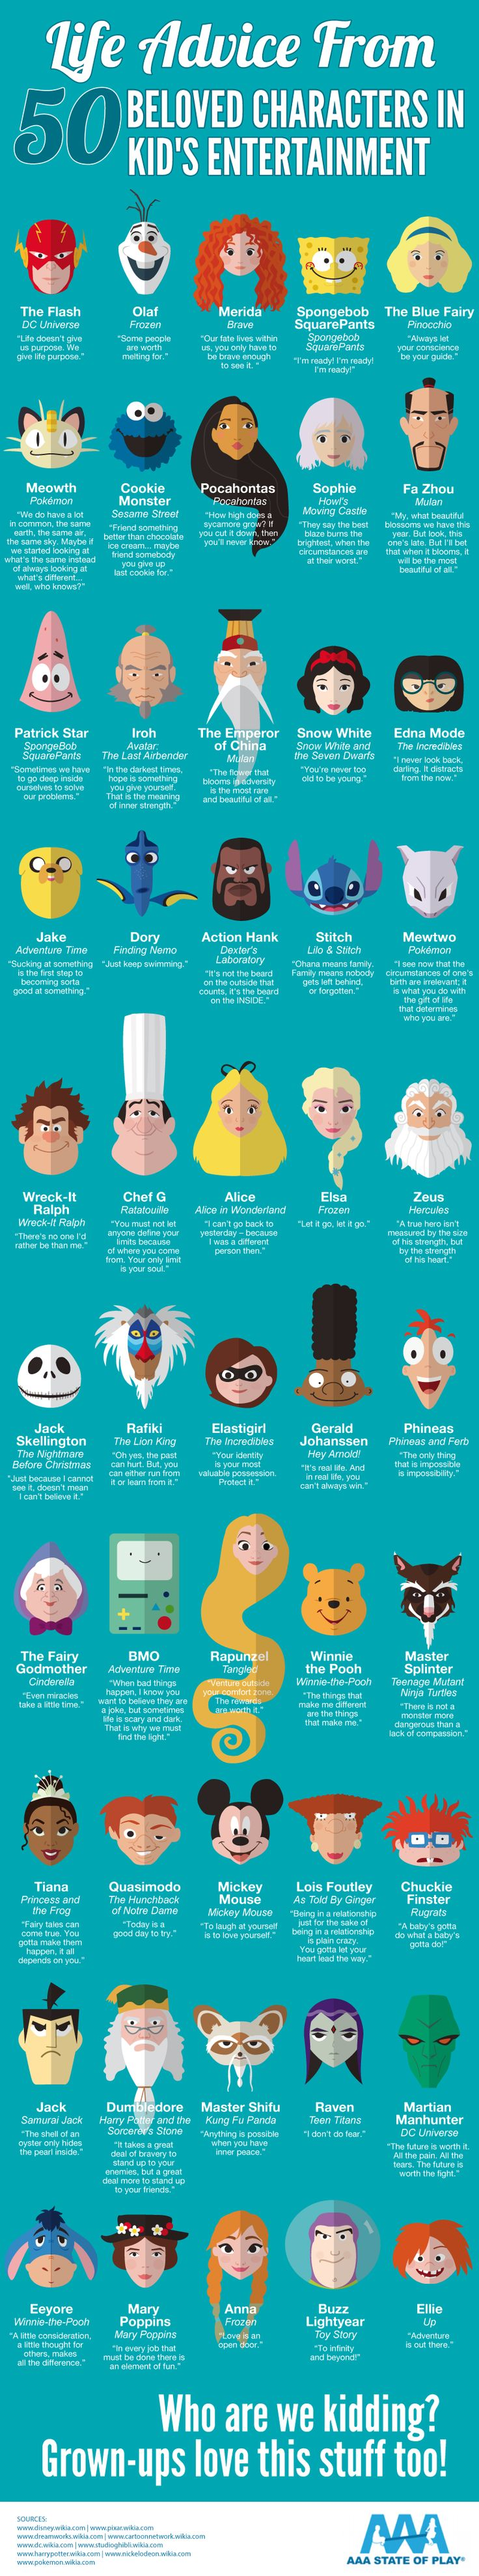 Life Advice from 50 Beloved Characters in Kid's Entertainment #infographic #Inspiration #Quotes #Motivation #Parenting